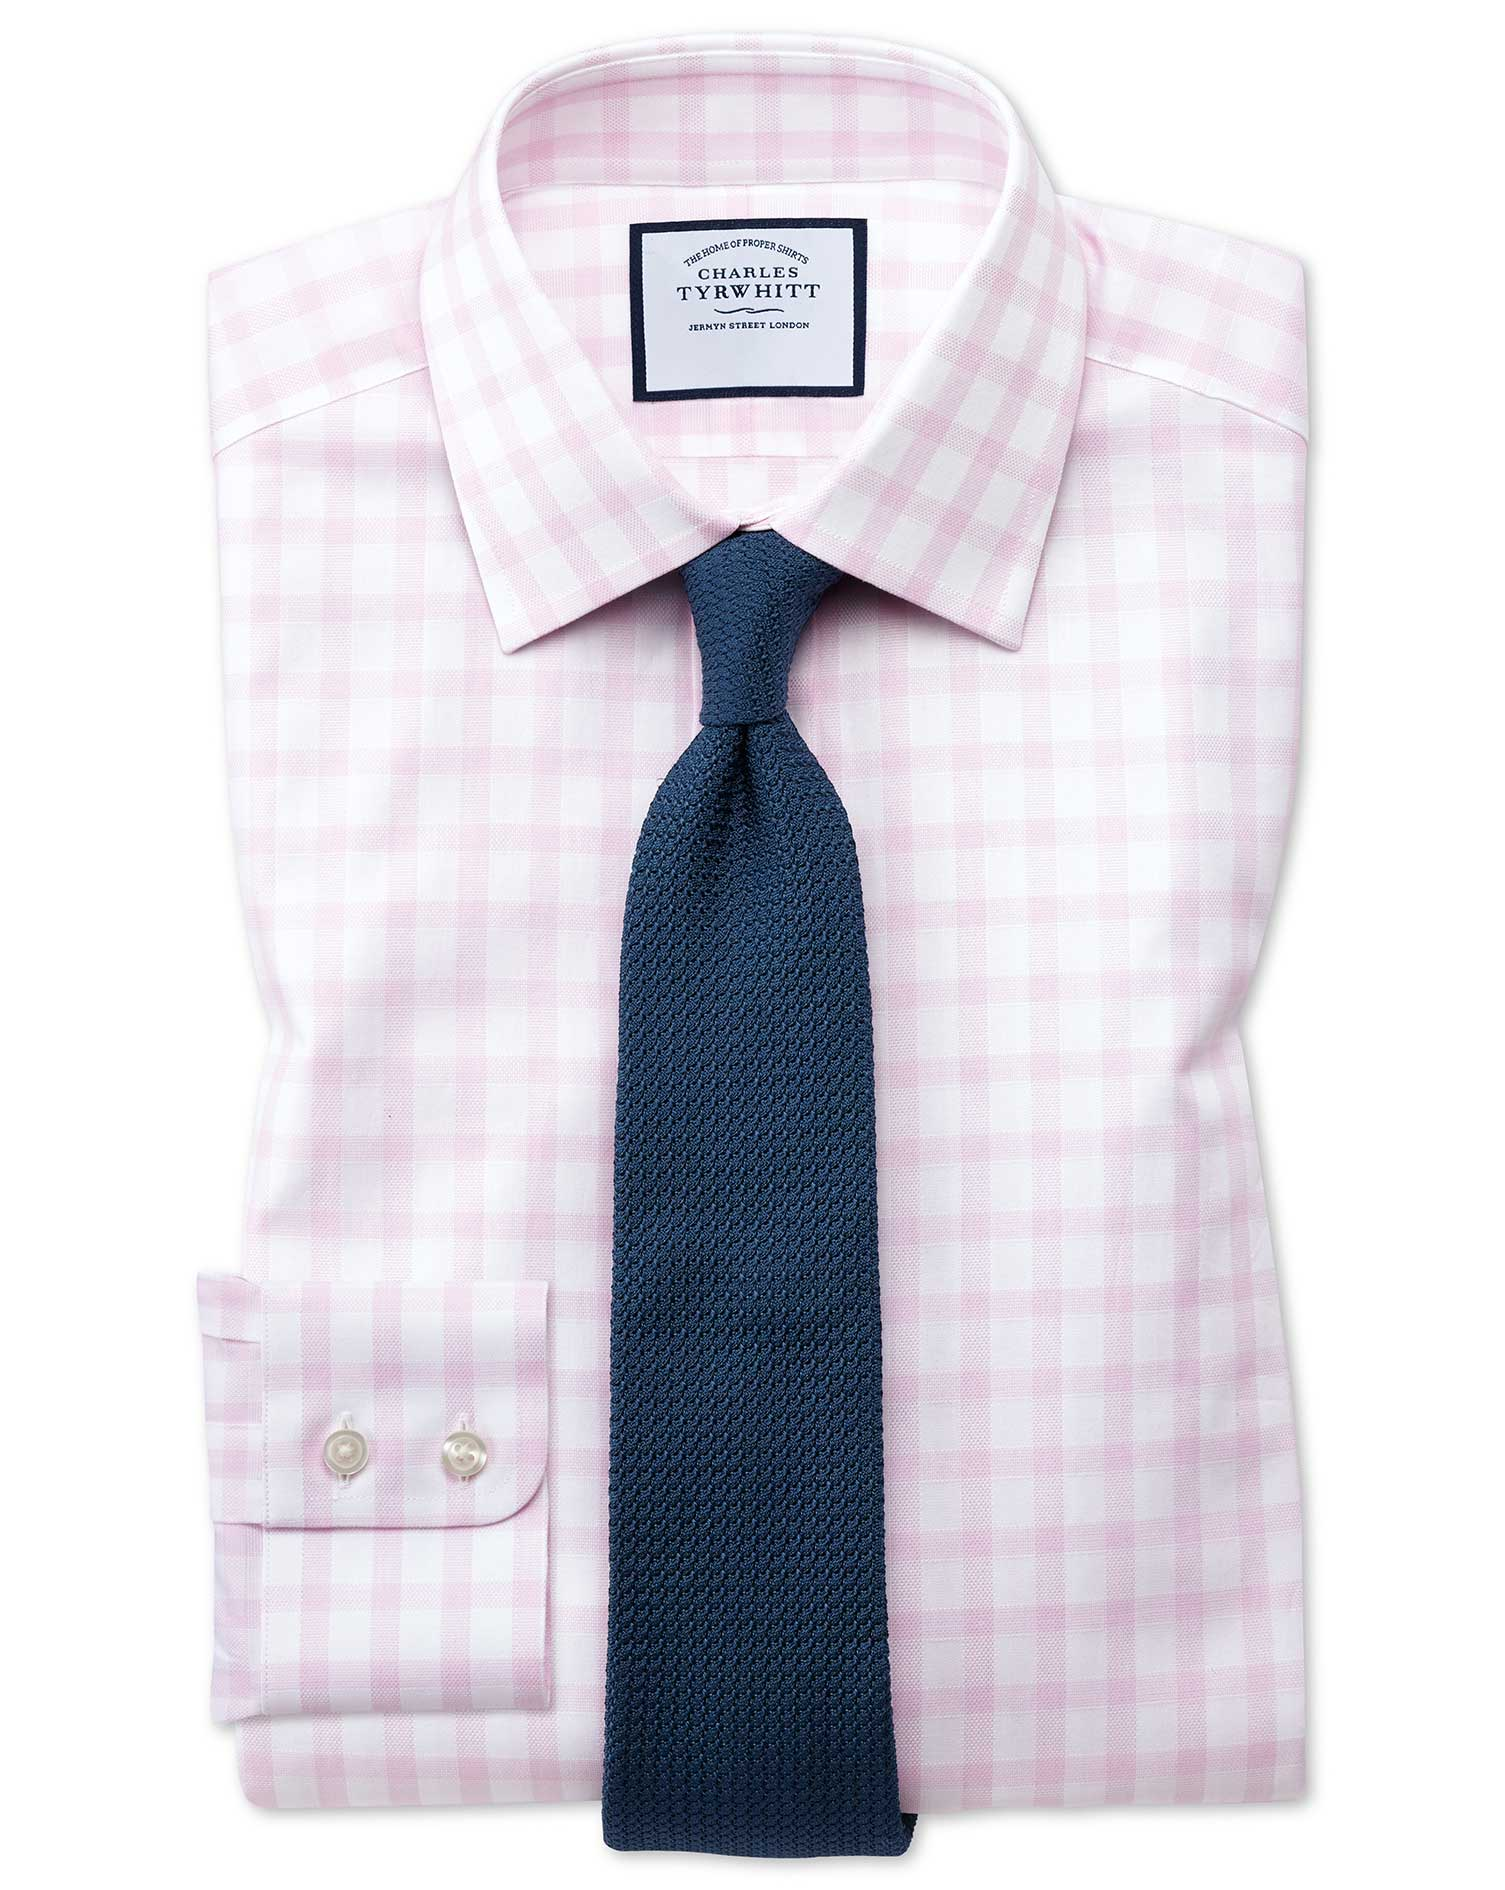 Classic Fit Windowpane Check Pink Cotton Formal Shirt Single Cuff Size 16/34 by Charles Tyrwhitt